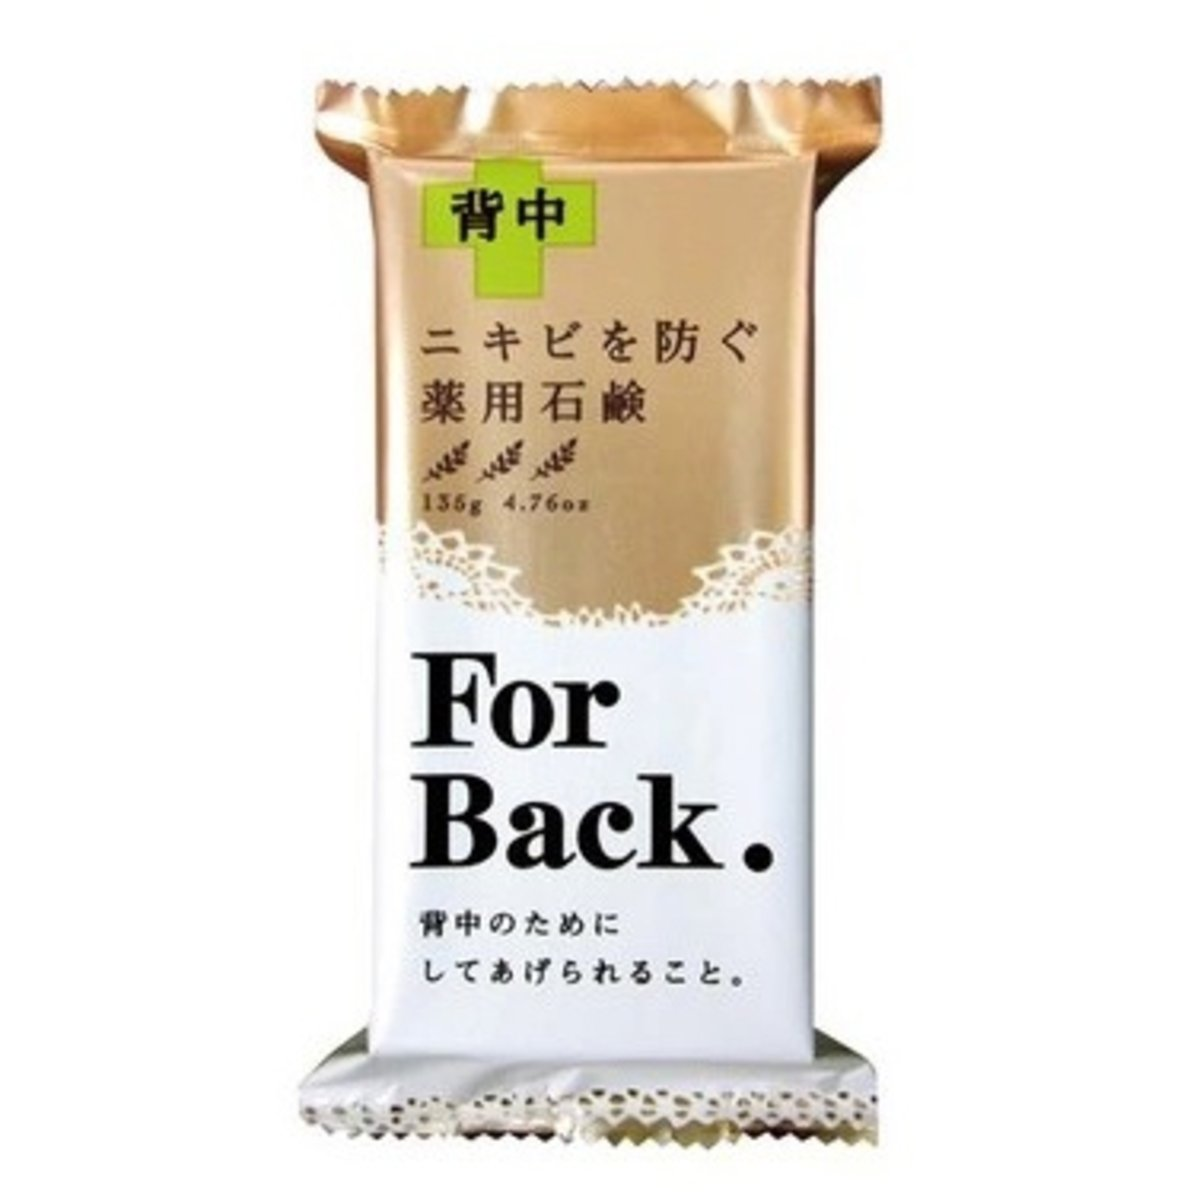 For Back Medicated Soap 135g (1 pcs)